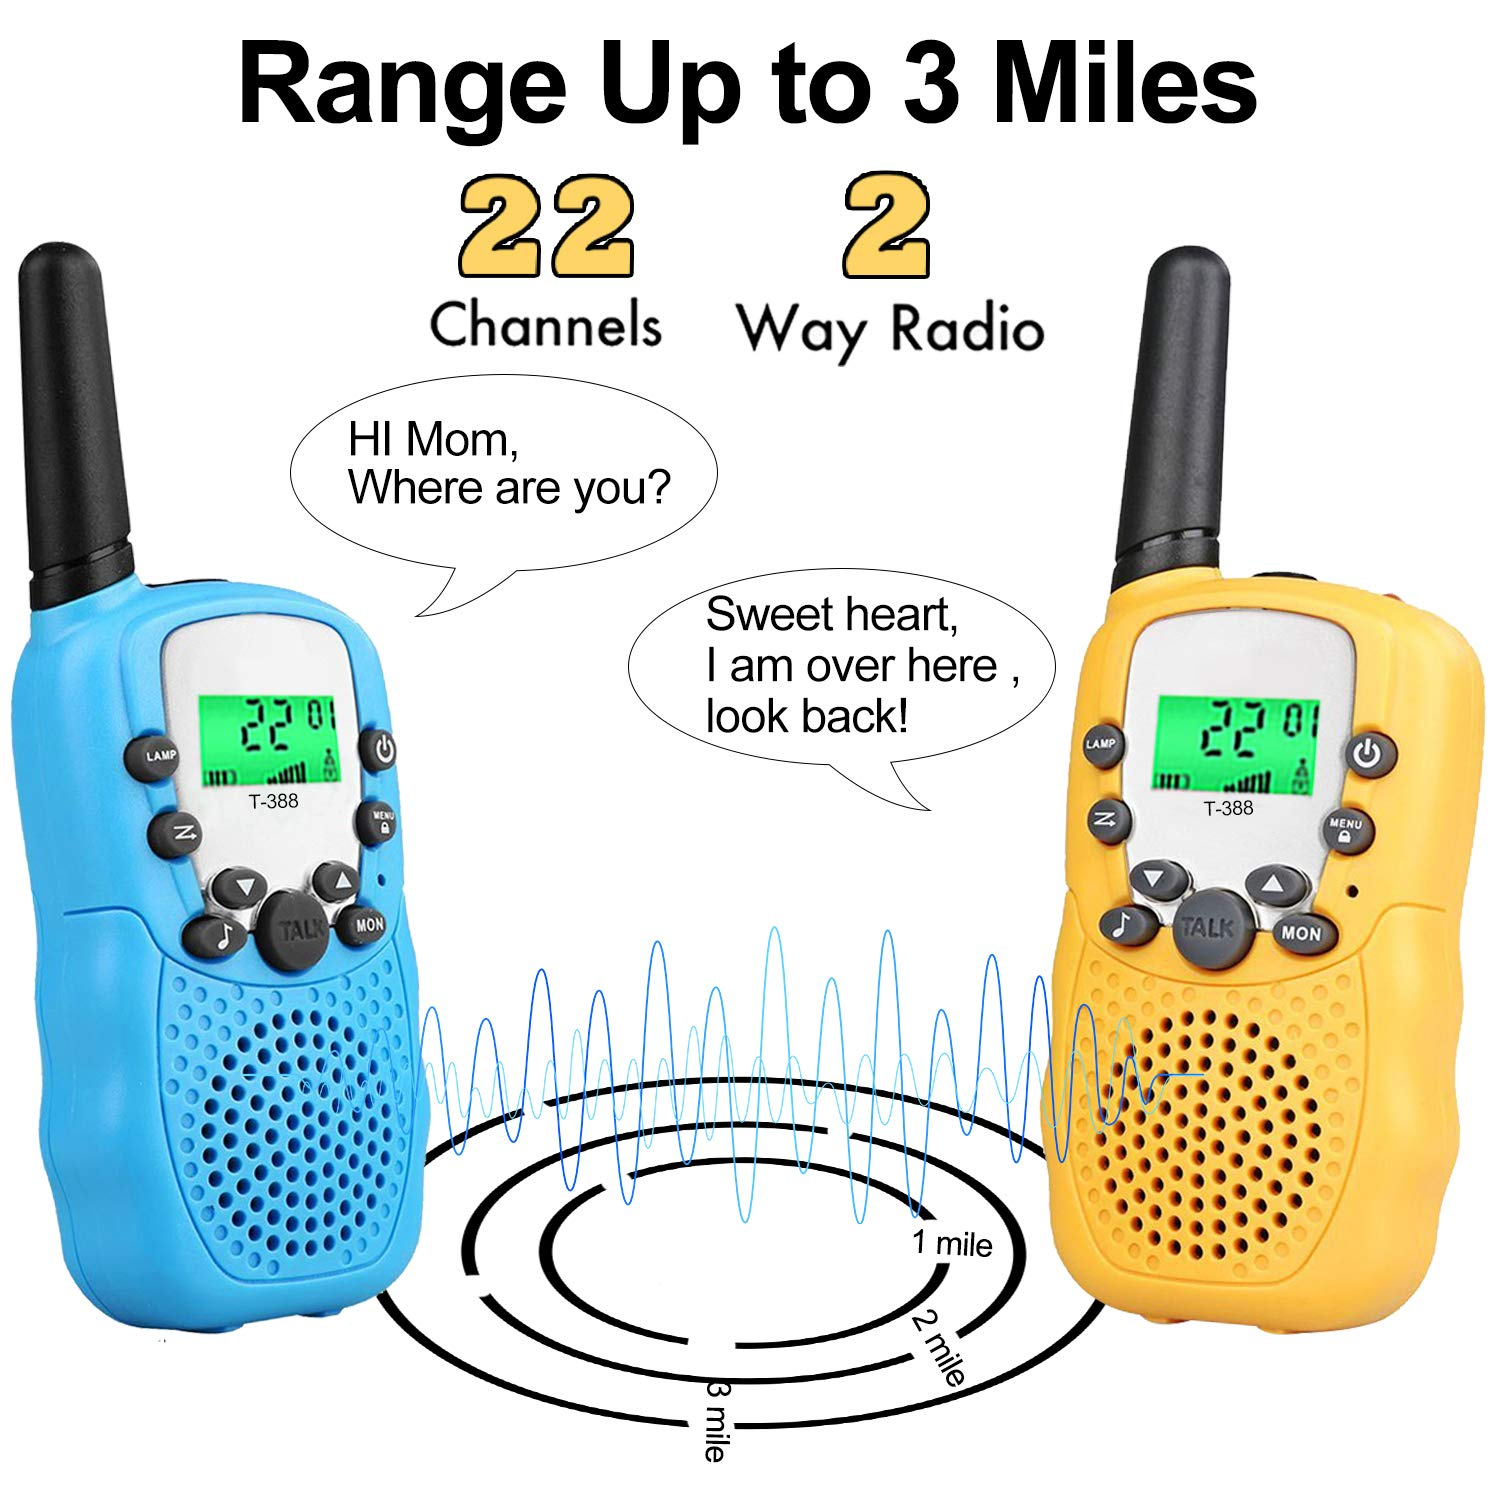 Kids Walkie Talkies Toys for 3-12 Year Old Boys Girls Toddlers, 4 Pack Walkie Talkies with 4 Earphones, 3 Mile Range 22 Channel Flashlight Two-Way Radio, Accessory for Outdoor Adventure Camping Game by iGeeKid (Image #3)